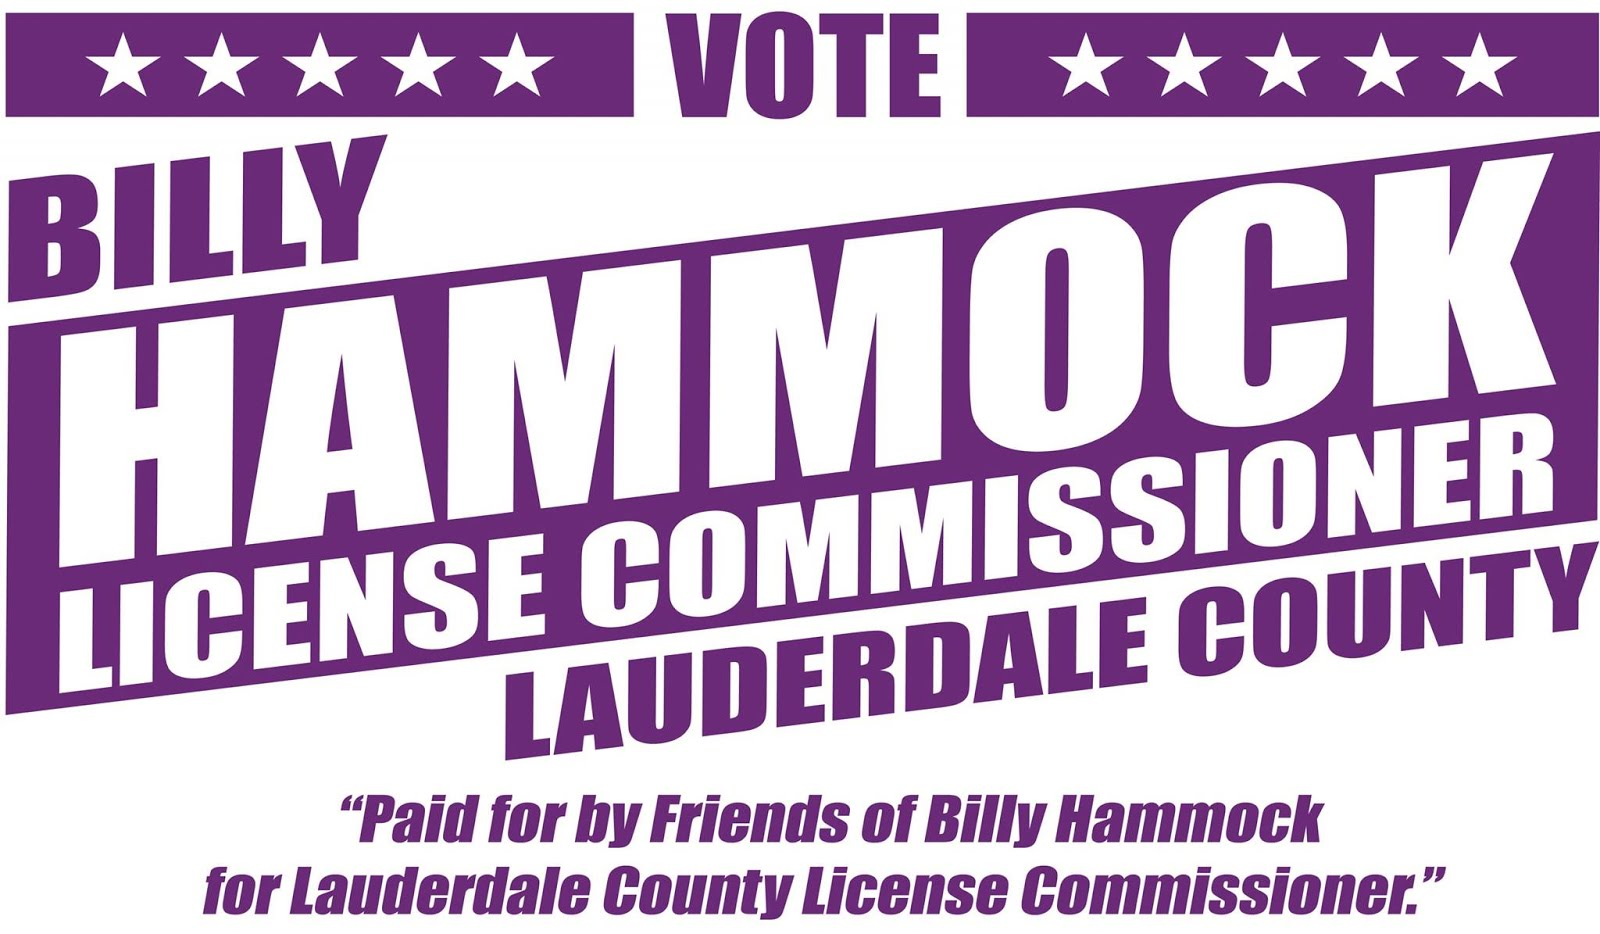 Vote Billy Hammock for Lauderdale Co License Commissioner